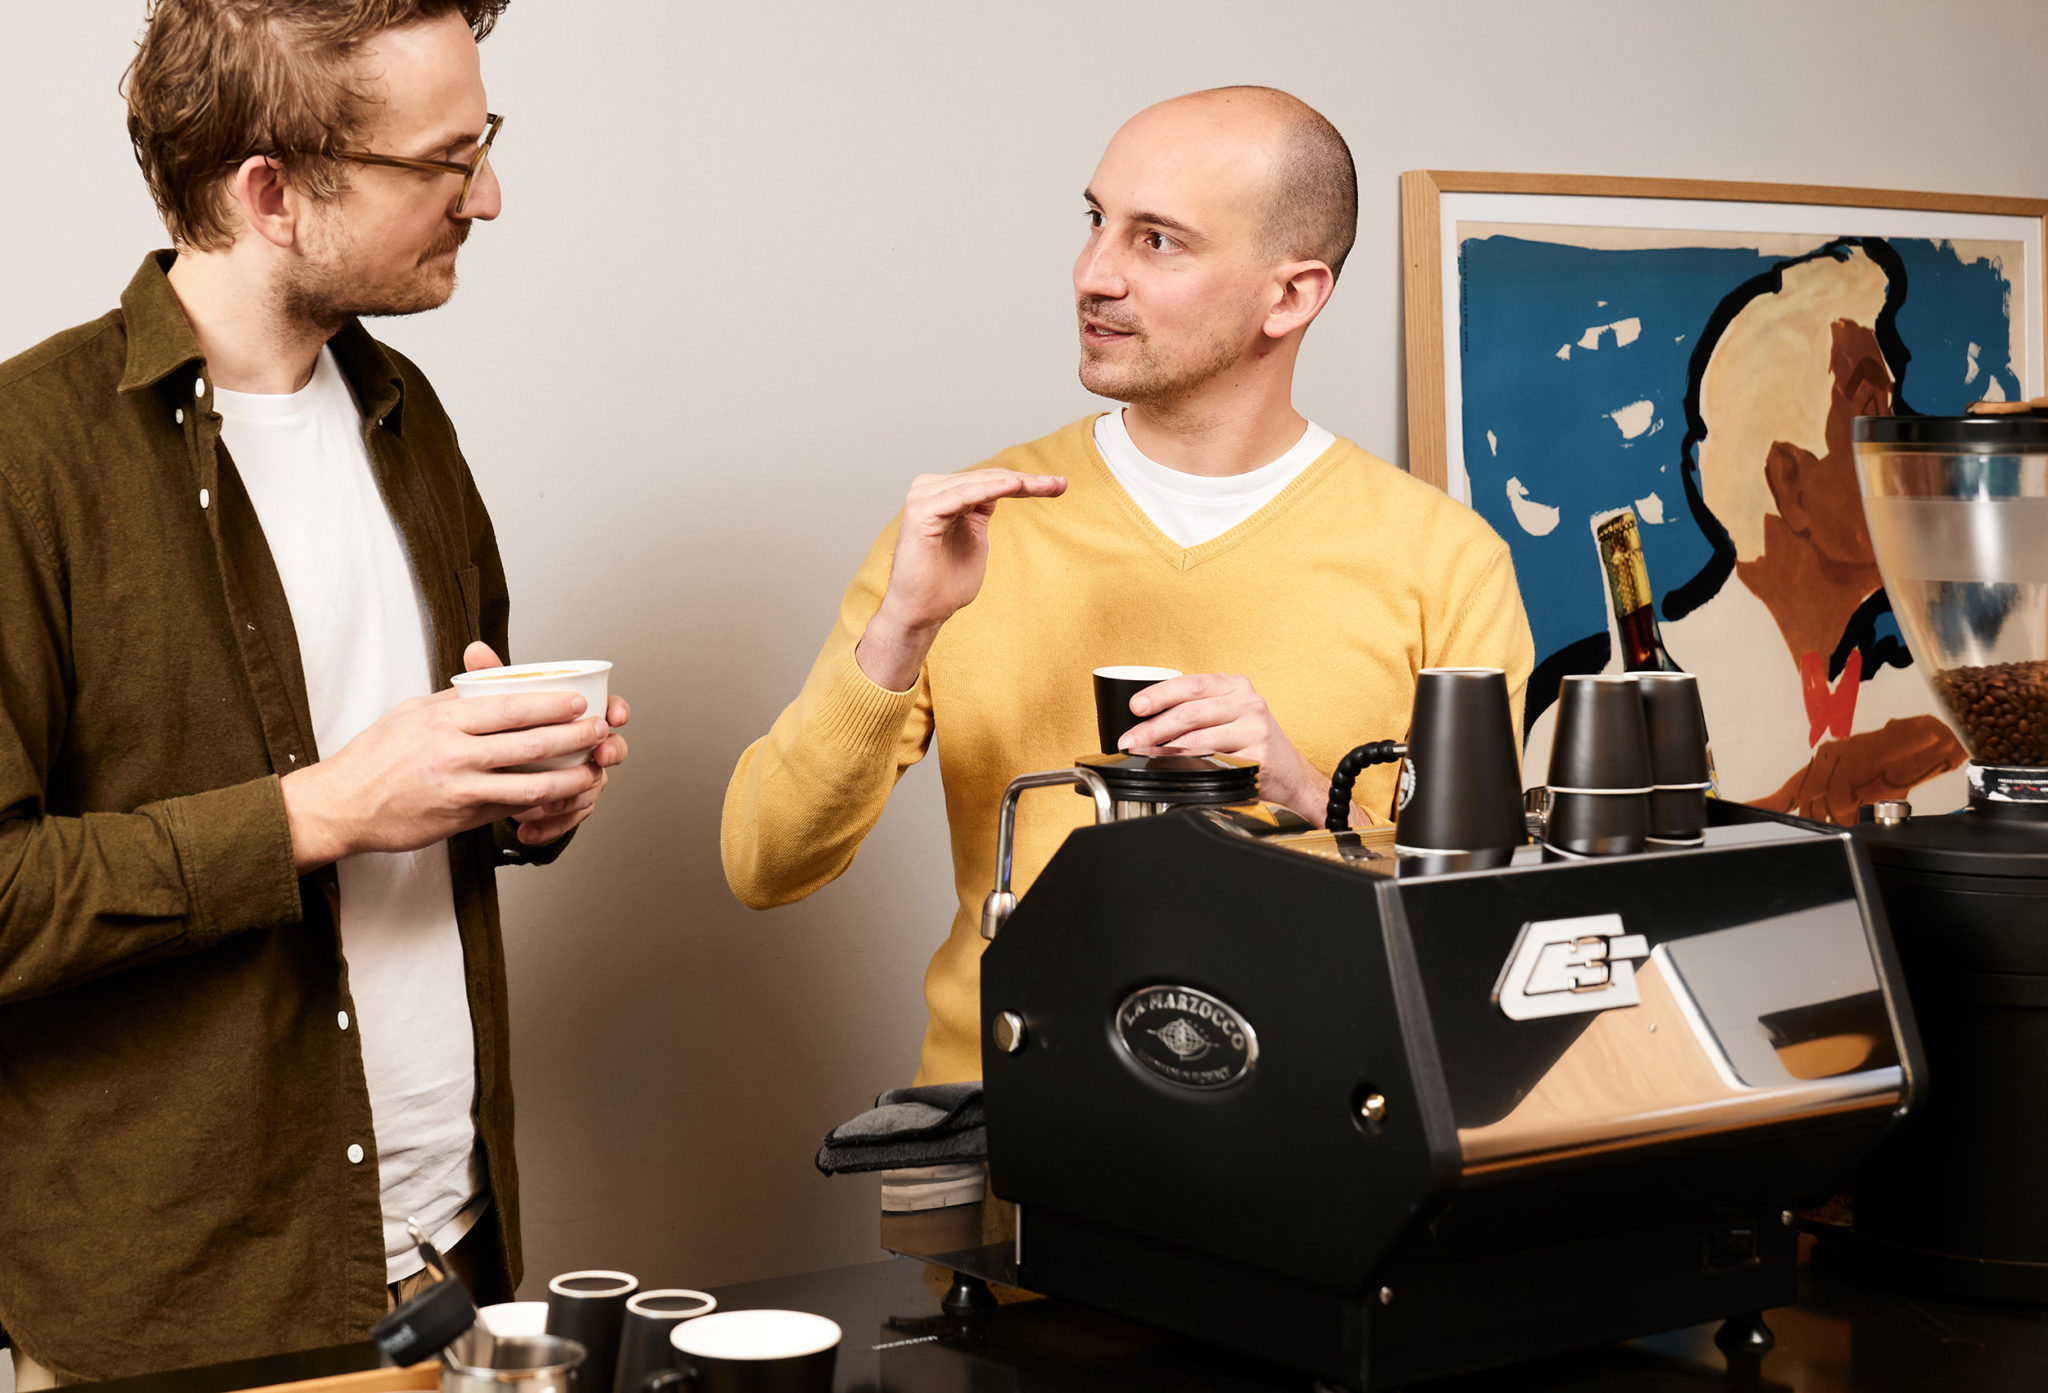 vicafe for your office